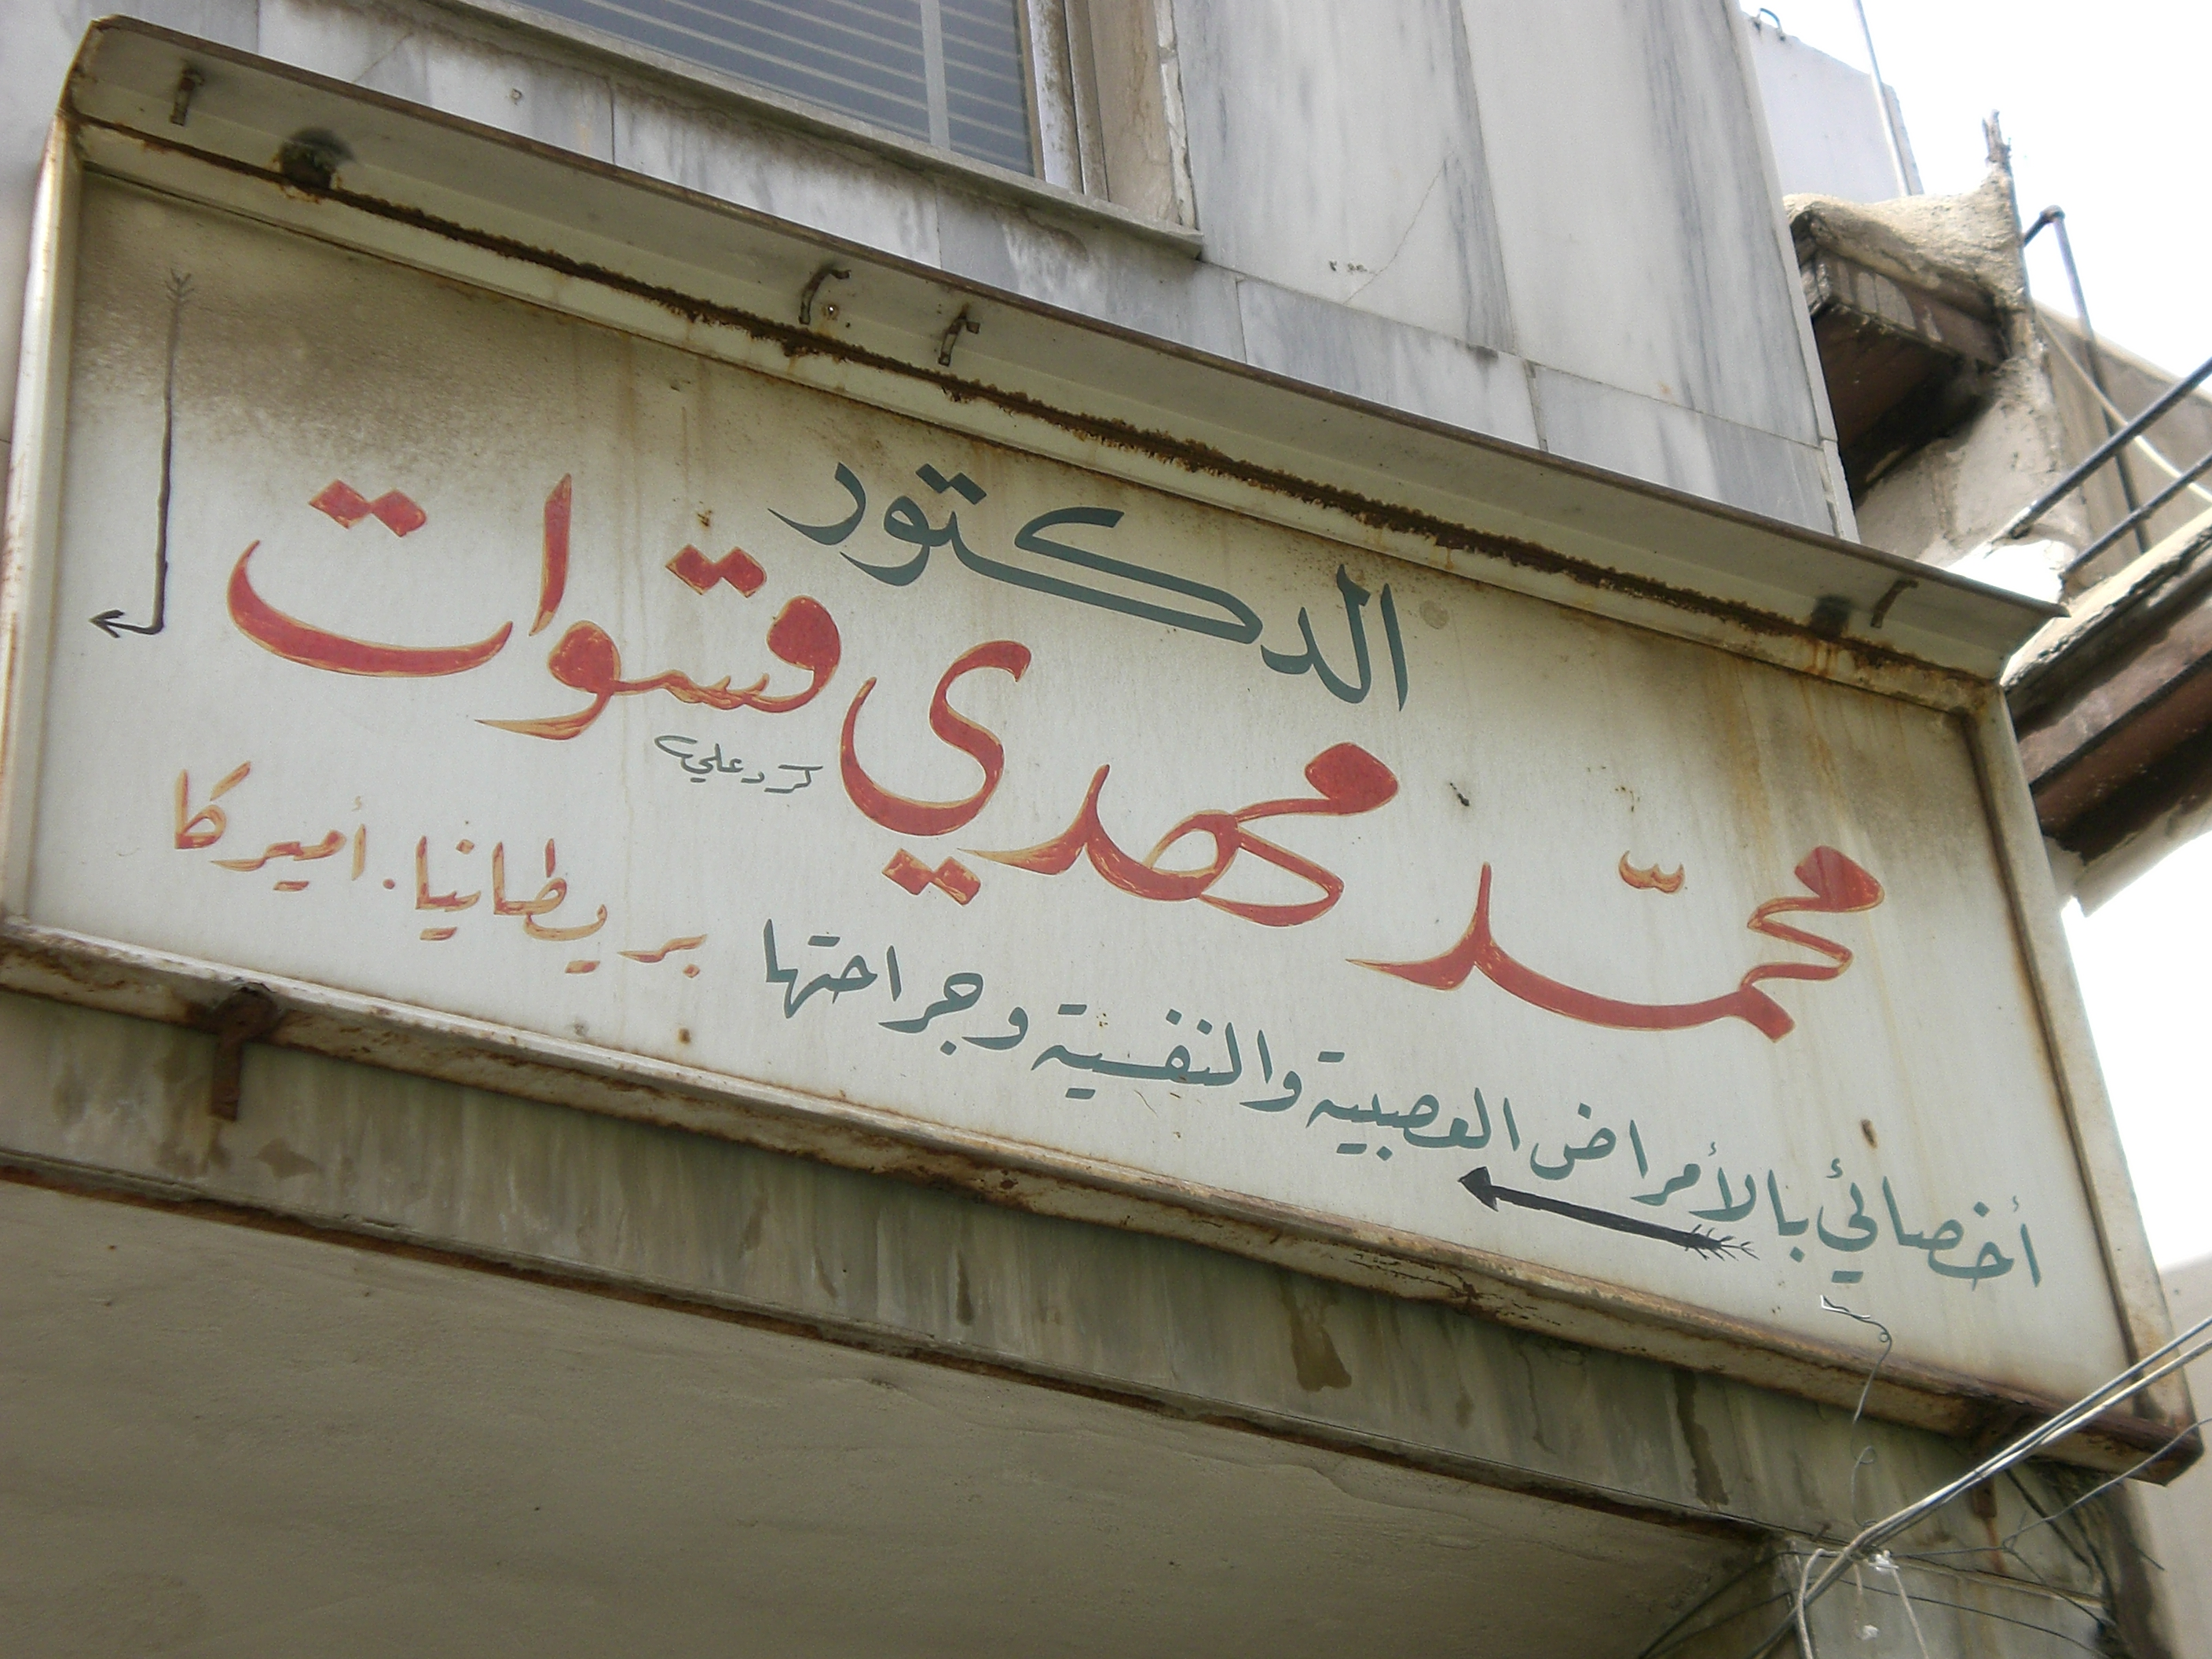 Hand-lettered shop sign of a doctor's surgery illustrating elongation principles of Arabic writing styles.